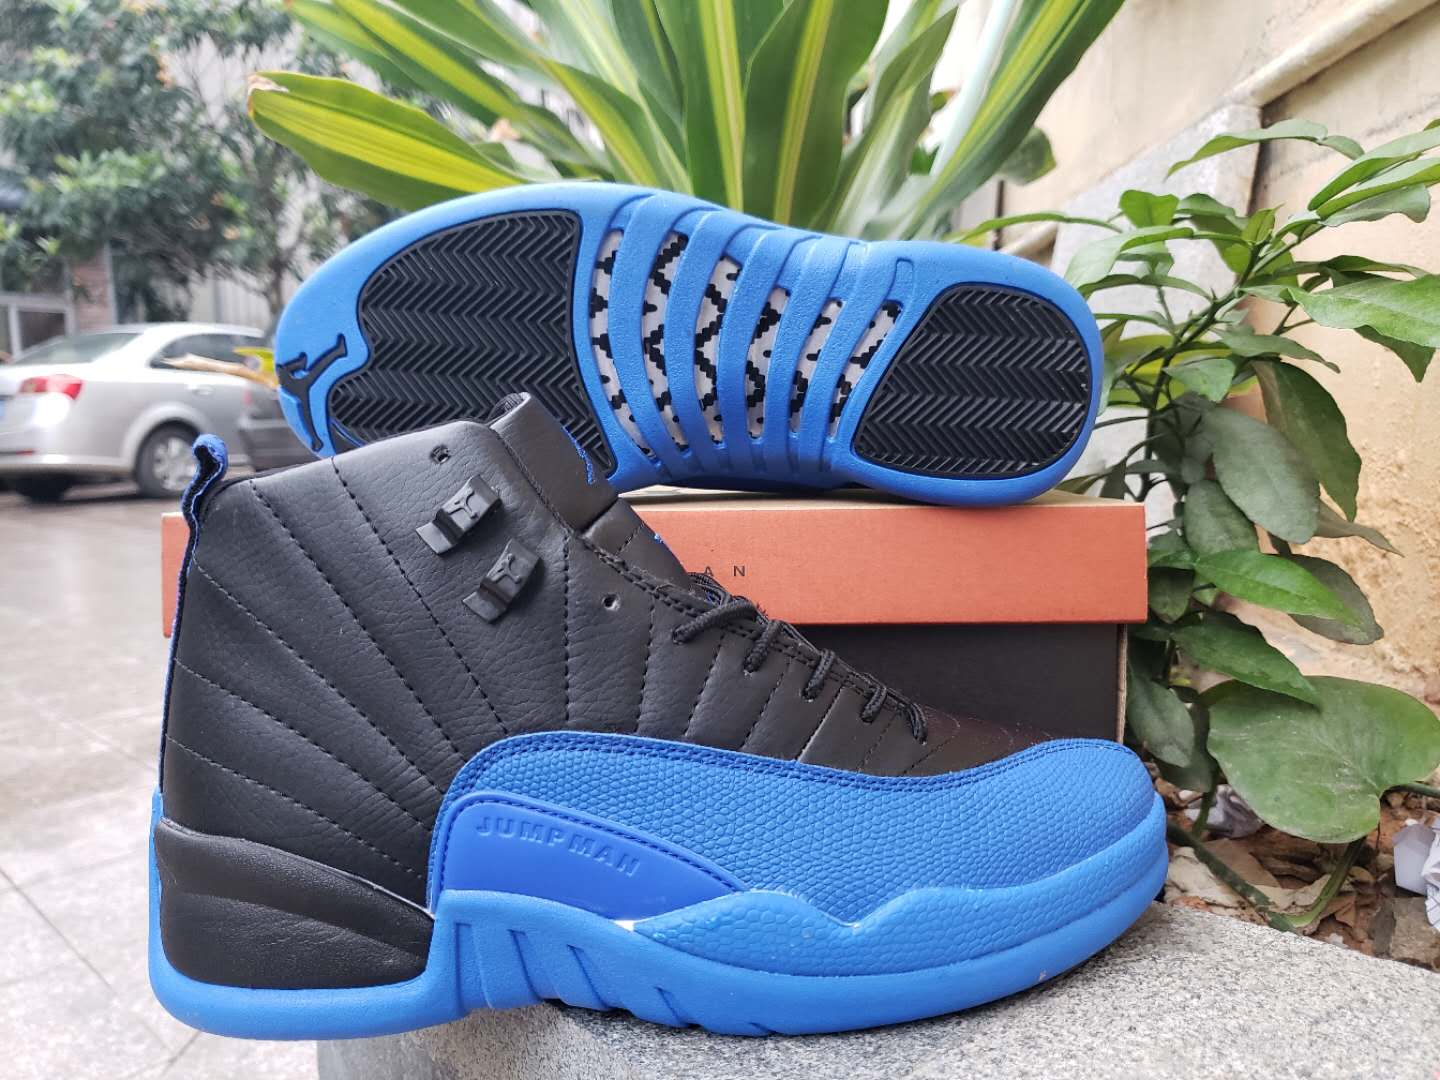 2019 Air Jordan 12 Retro Black Royal Blue Shoes